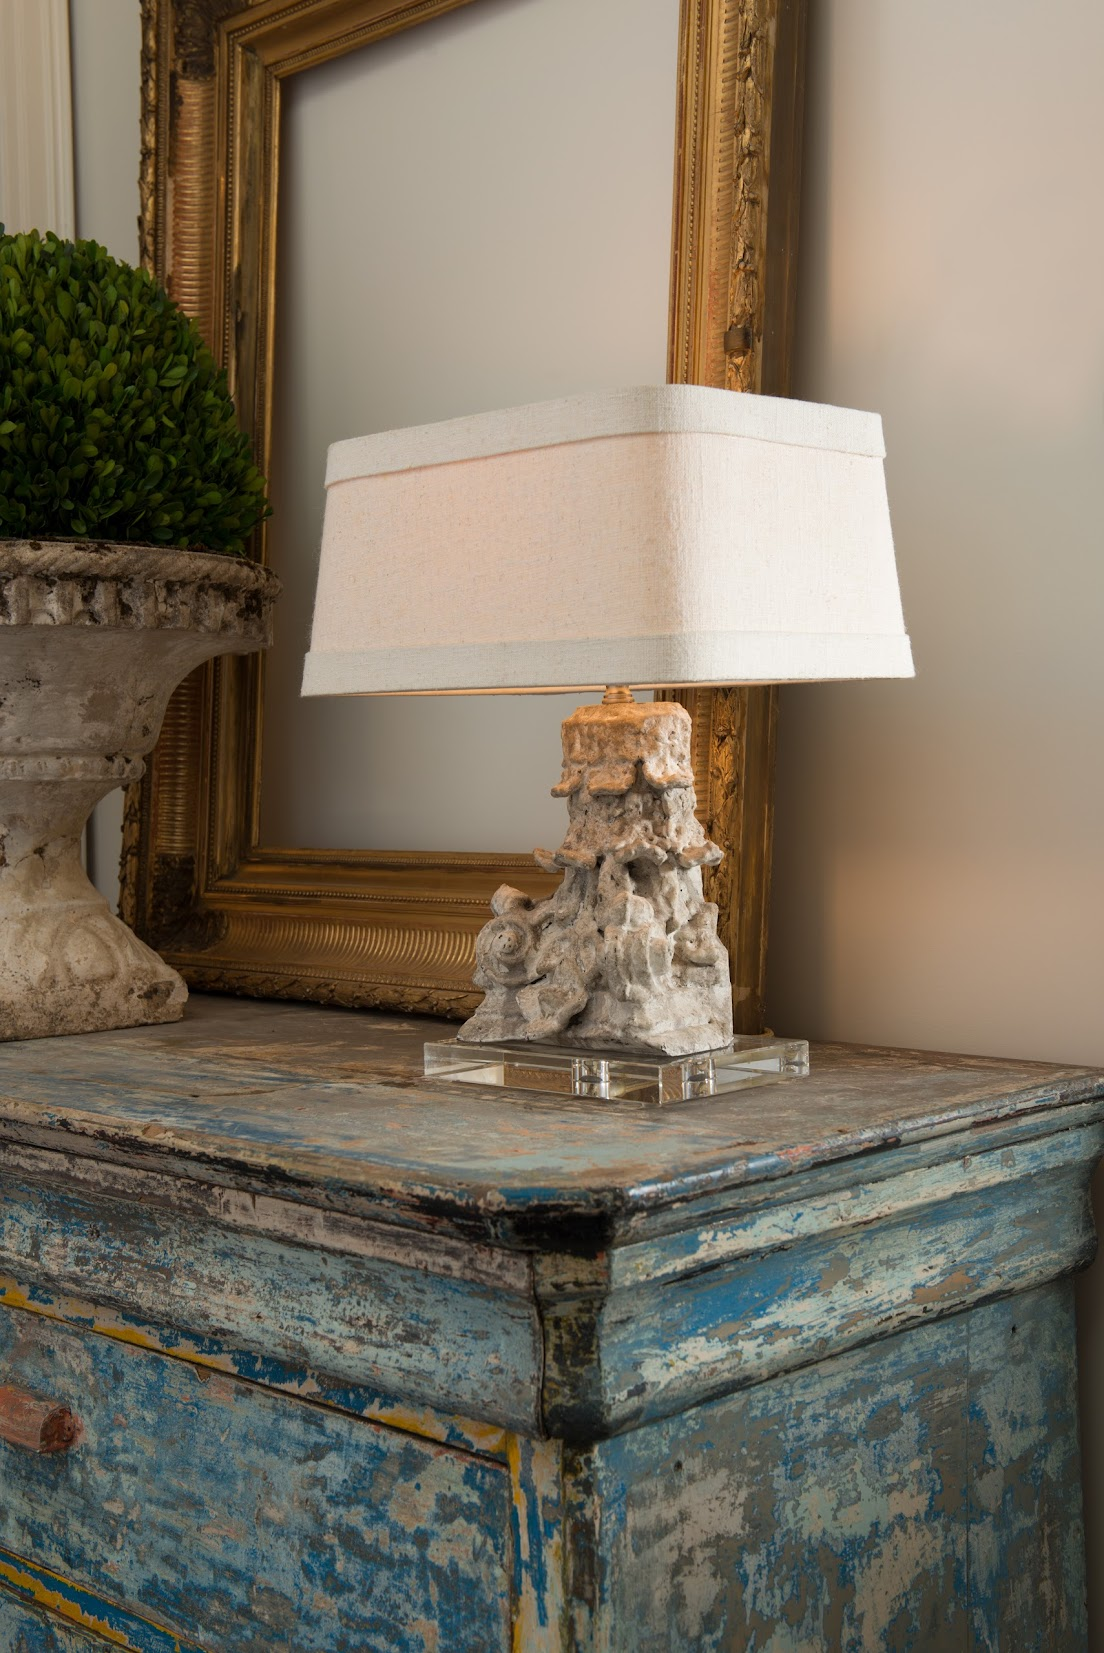 Cote de texas a brand new aidan gray giveaway to end all giveaways for years aidan gray was known for its french styled furniture lighting and accessories many with chippy hand painted and white washed finishes geotapseo Image collections